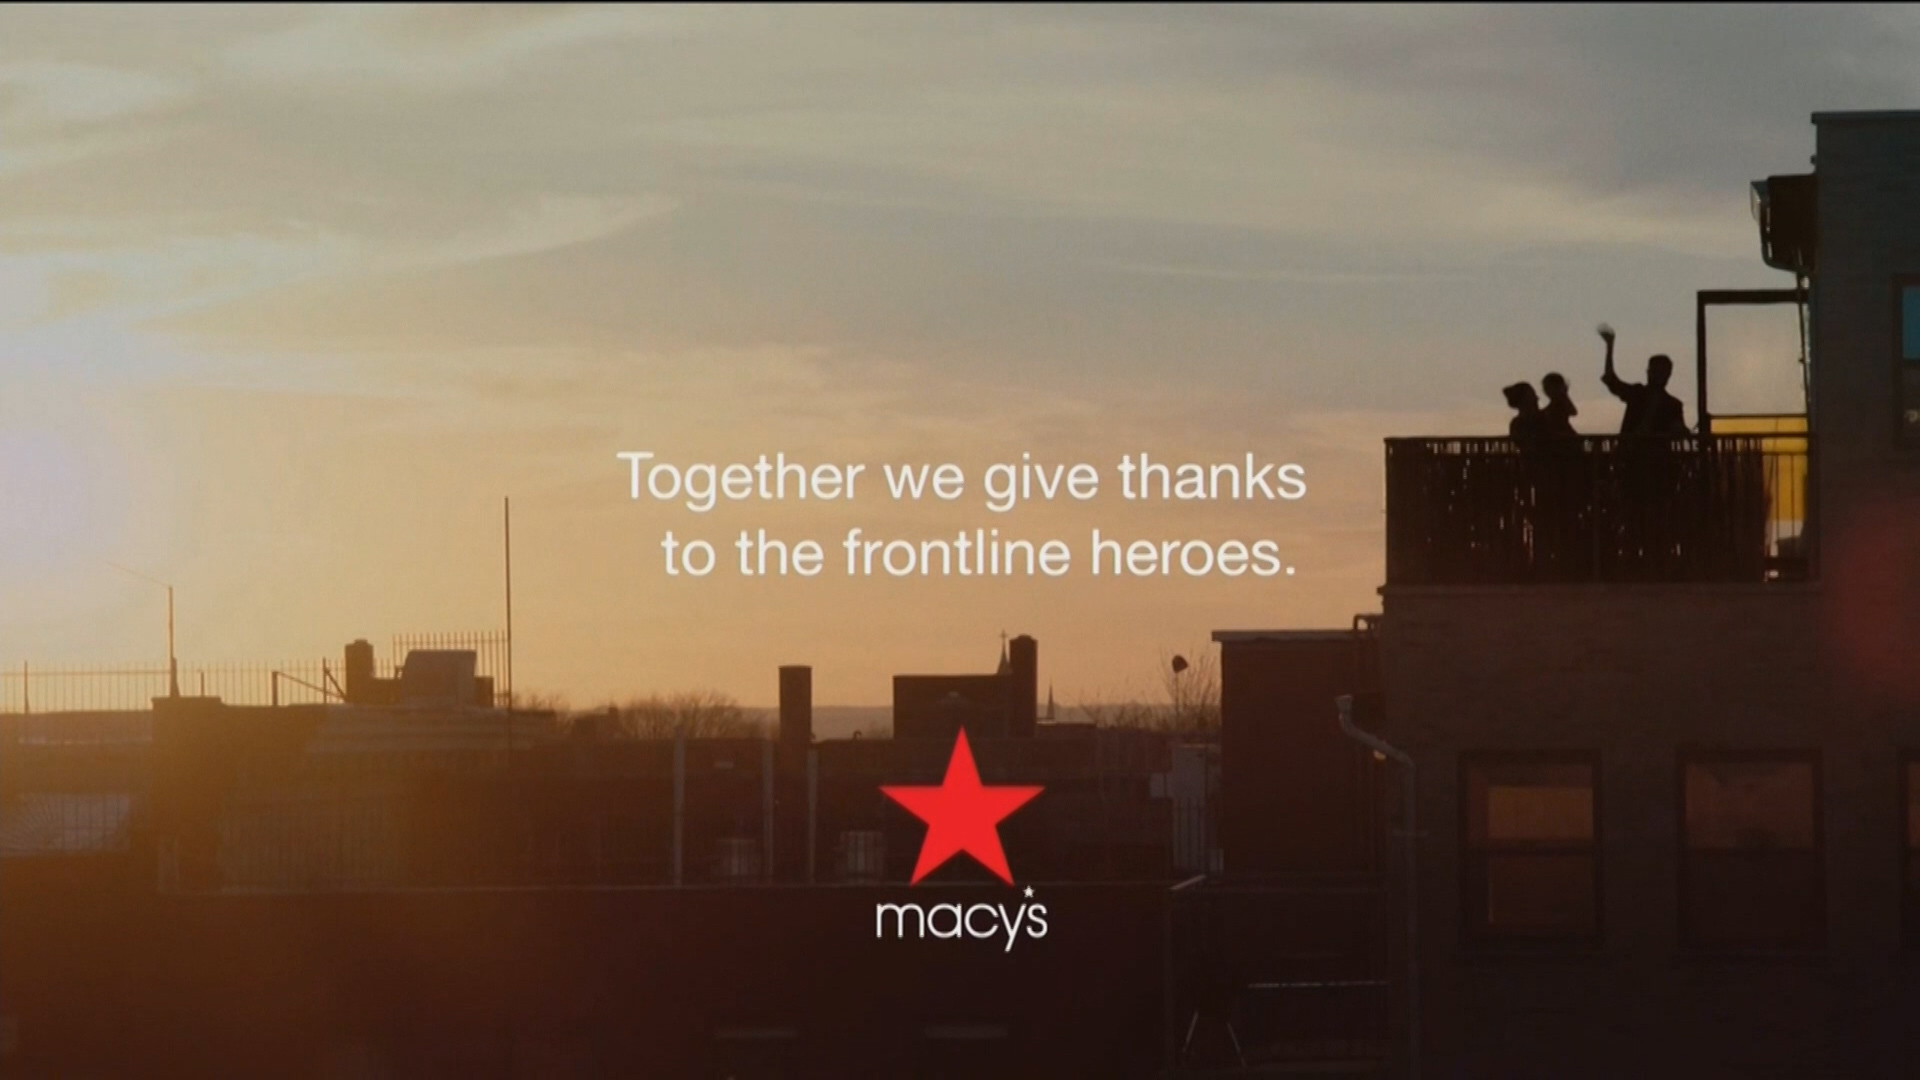 Macys---Covid-19---Healthcare_category---NBC_-_May_8--2020---dtc---USA---English---TV_commercial---30_seconds.mp4